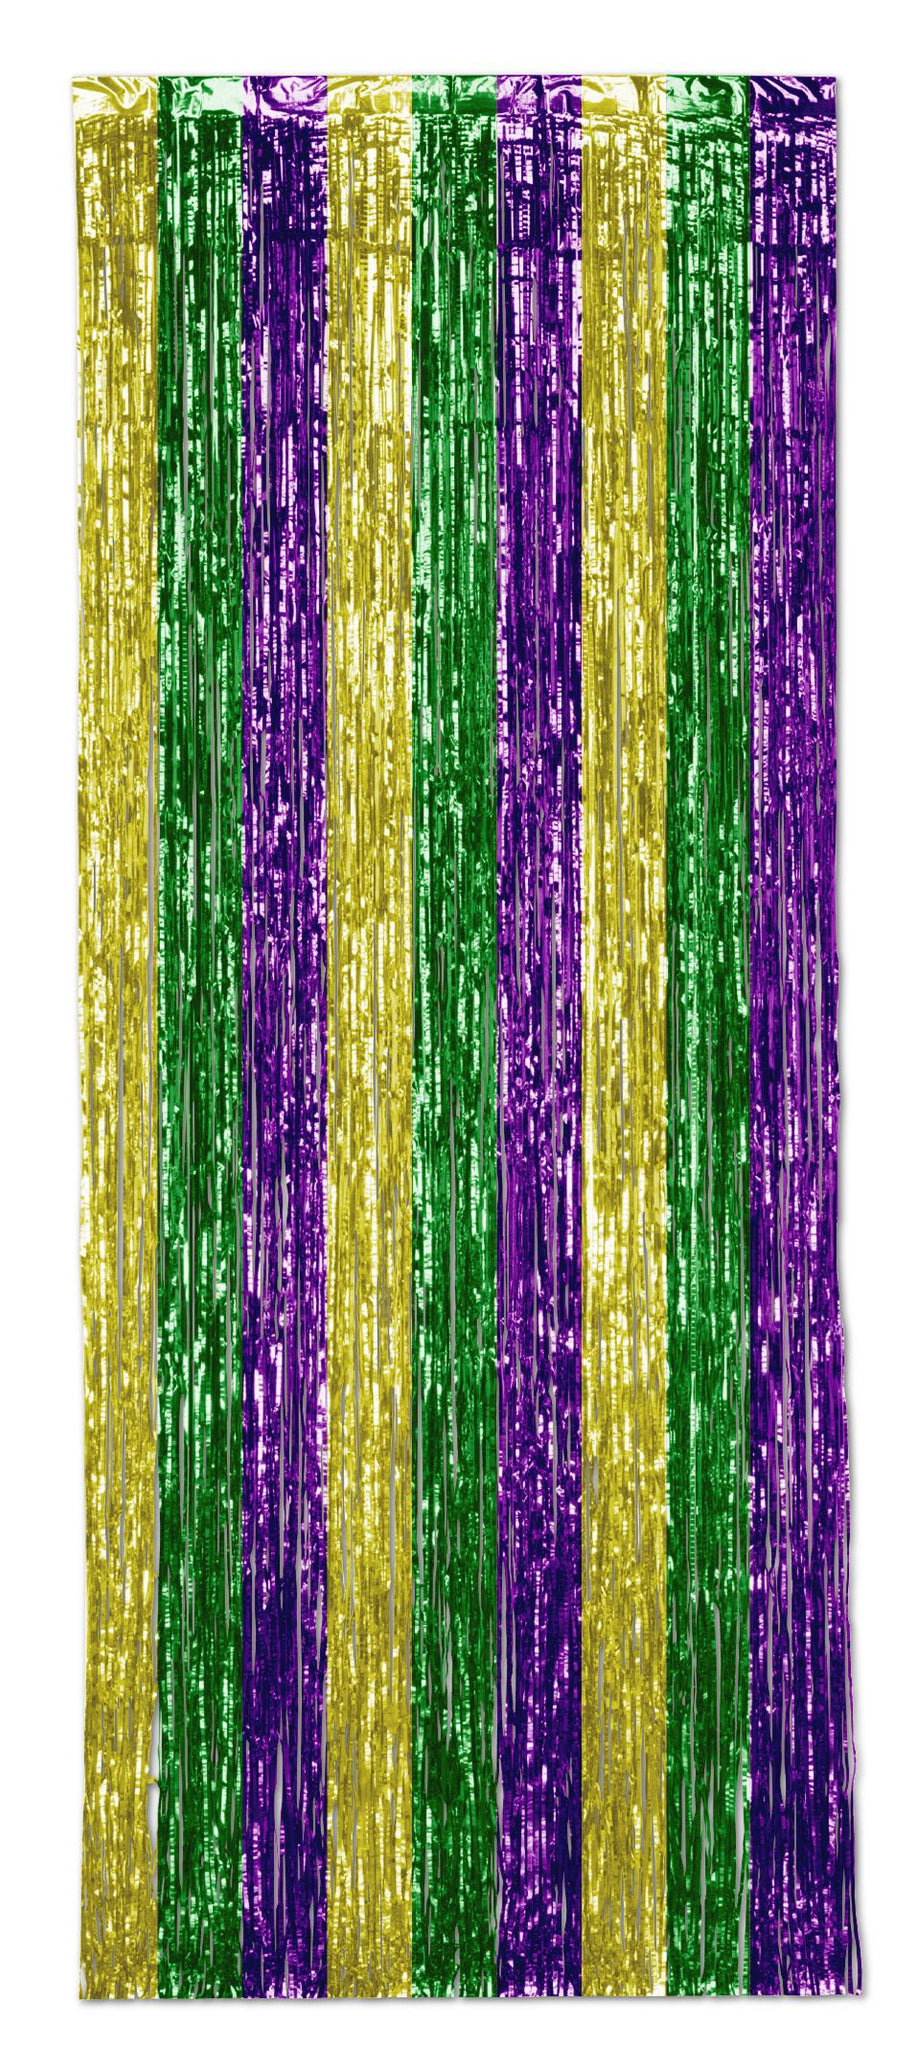 Gold, Green And Purple Shimmer Curtain - 2.5m